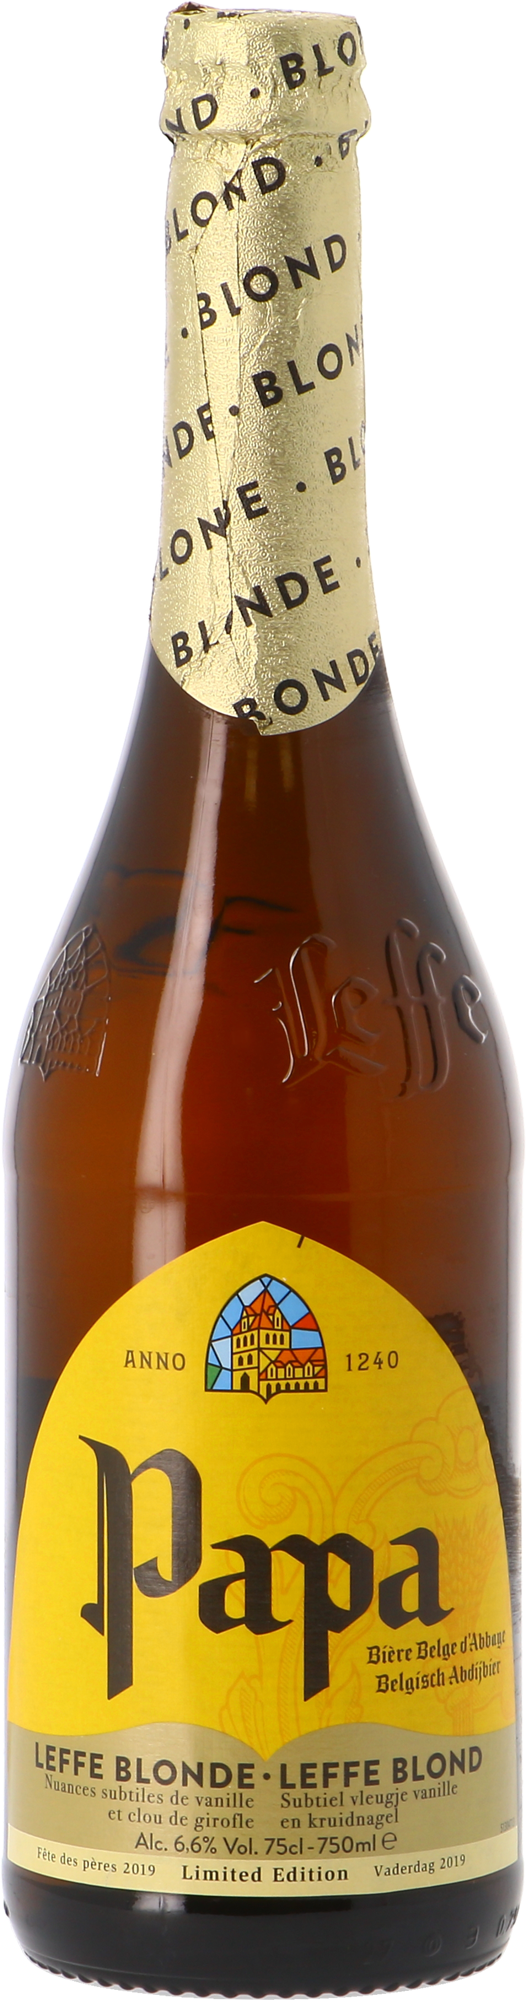 Leffe Blond Papa - Limited Edition 75cl